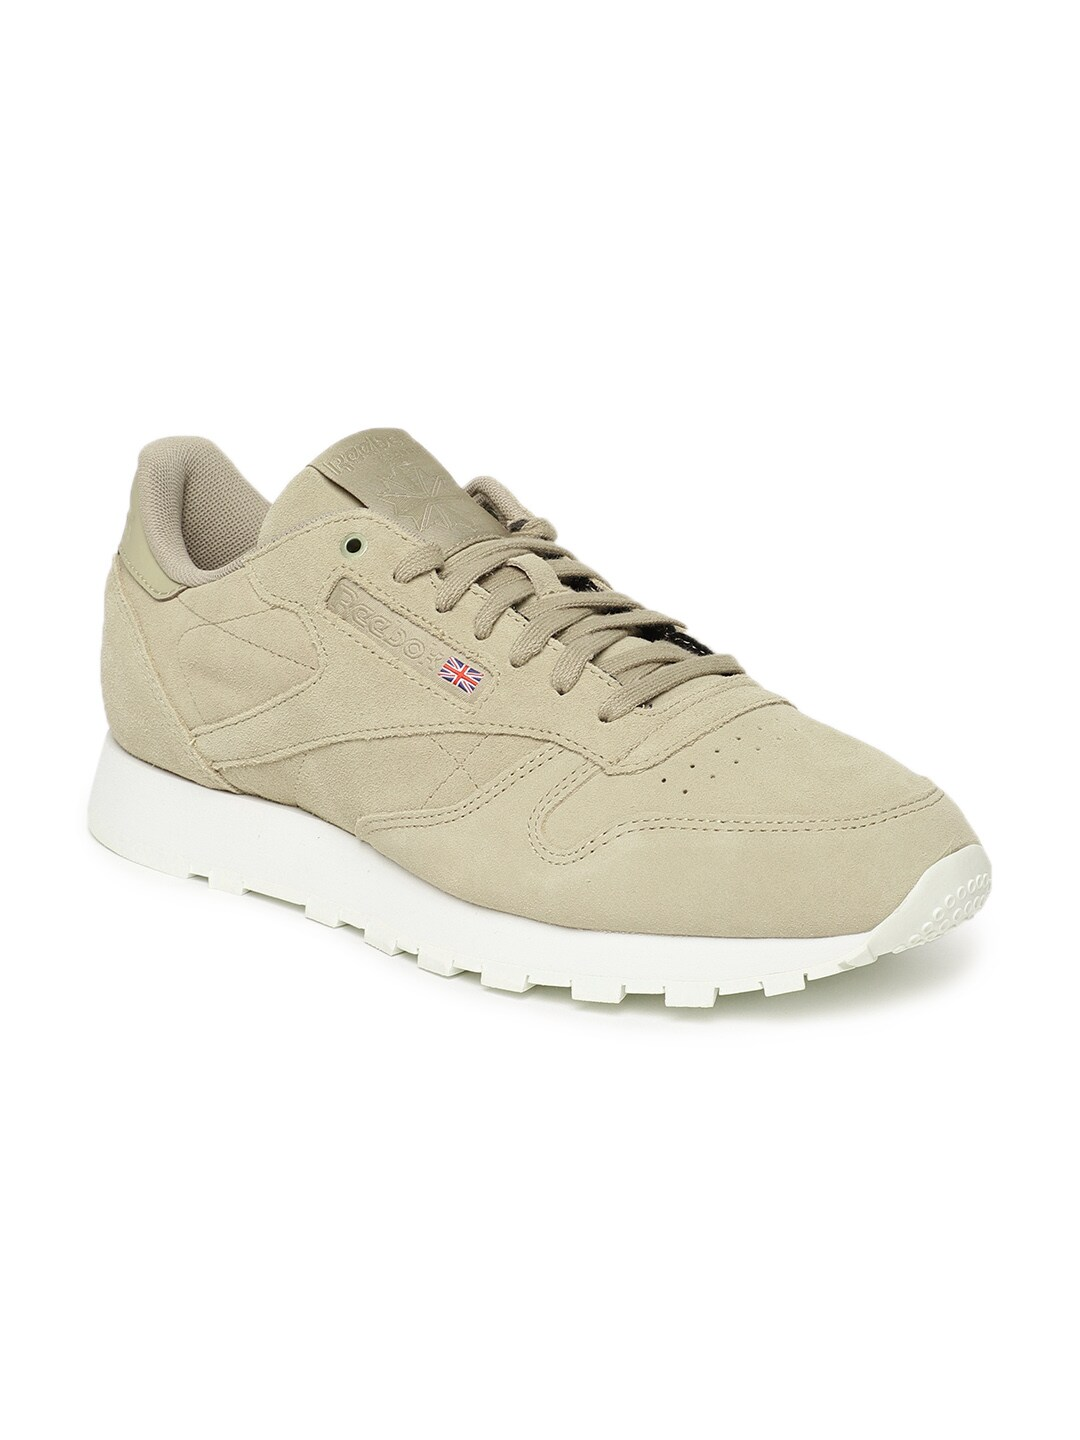 2055fed3b3b Reebok Suede Shoes - Buy Reebok Suede Shoes online in India